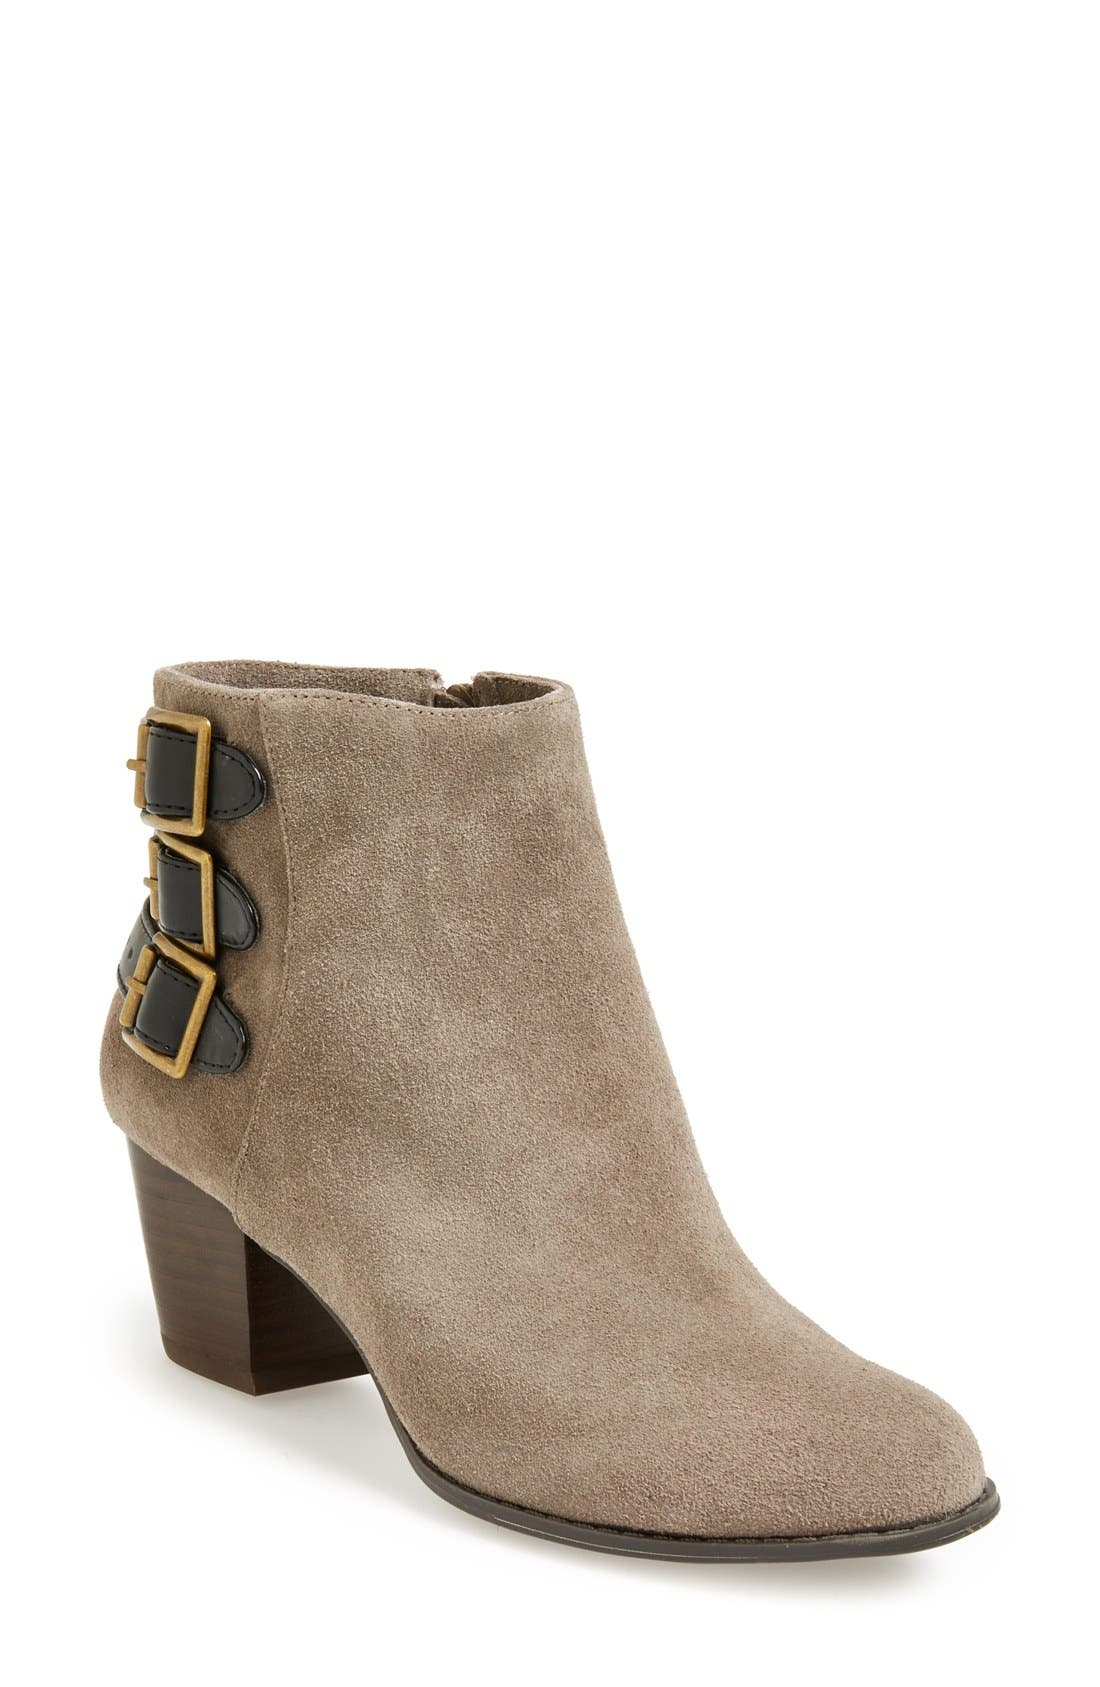 Main Image - Sole Society 'Terilyn' Bootie (Women)